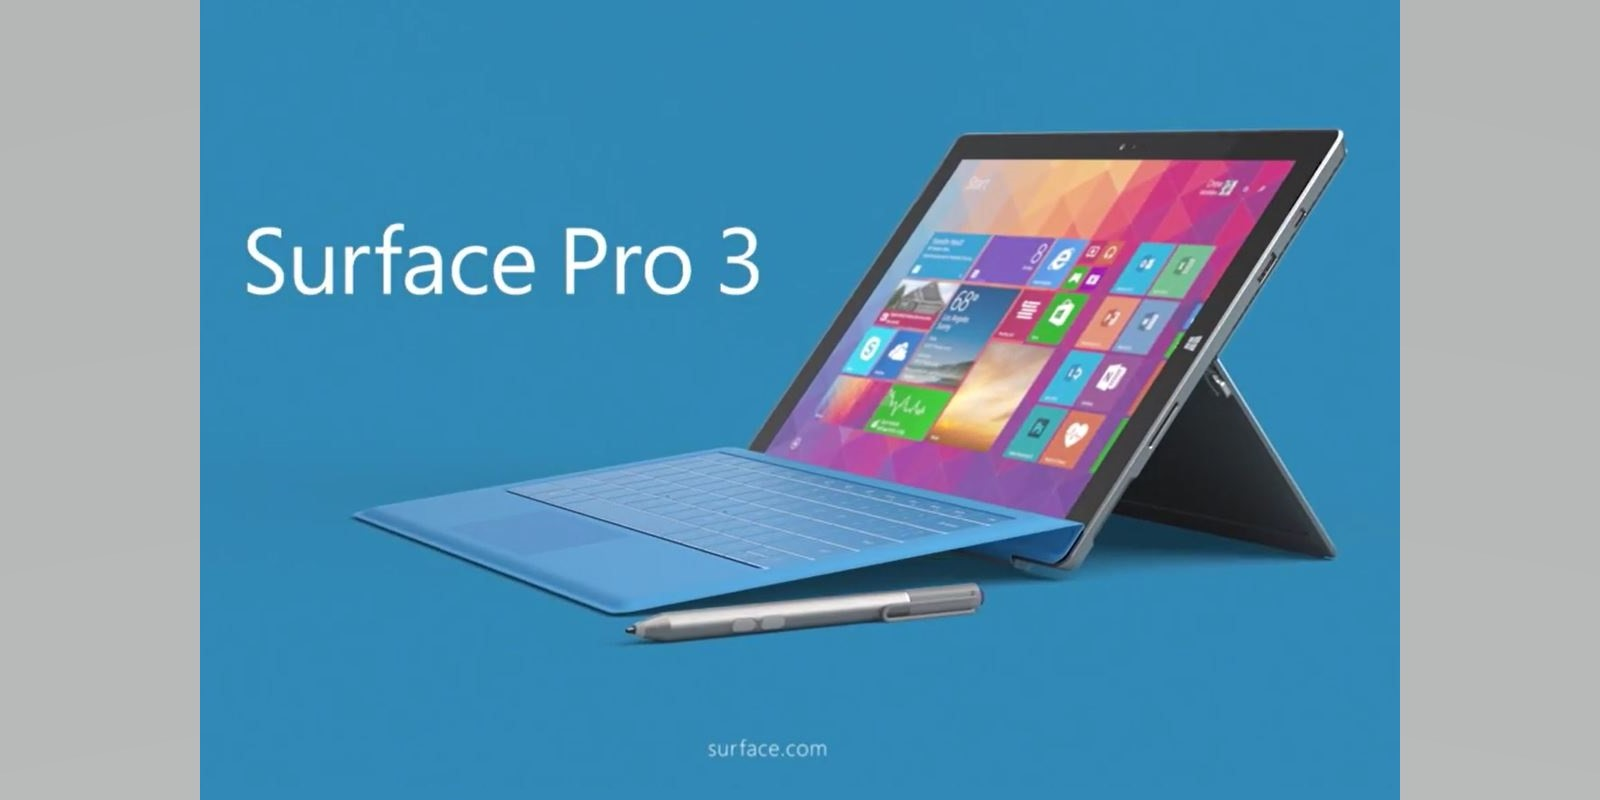 The Surface Pro 3 has 1 more year of official support News